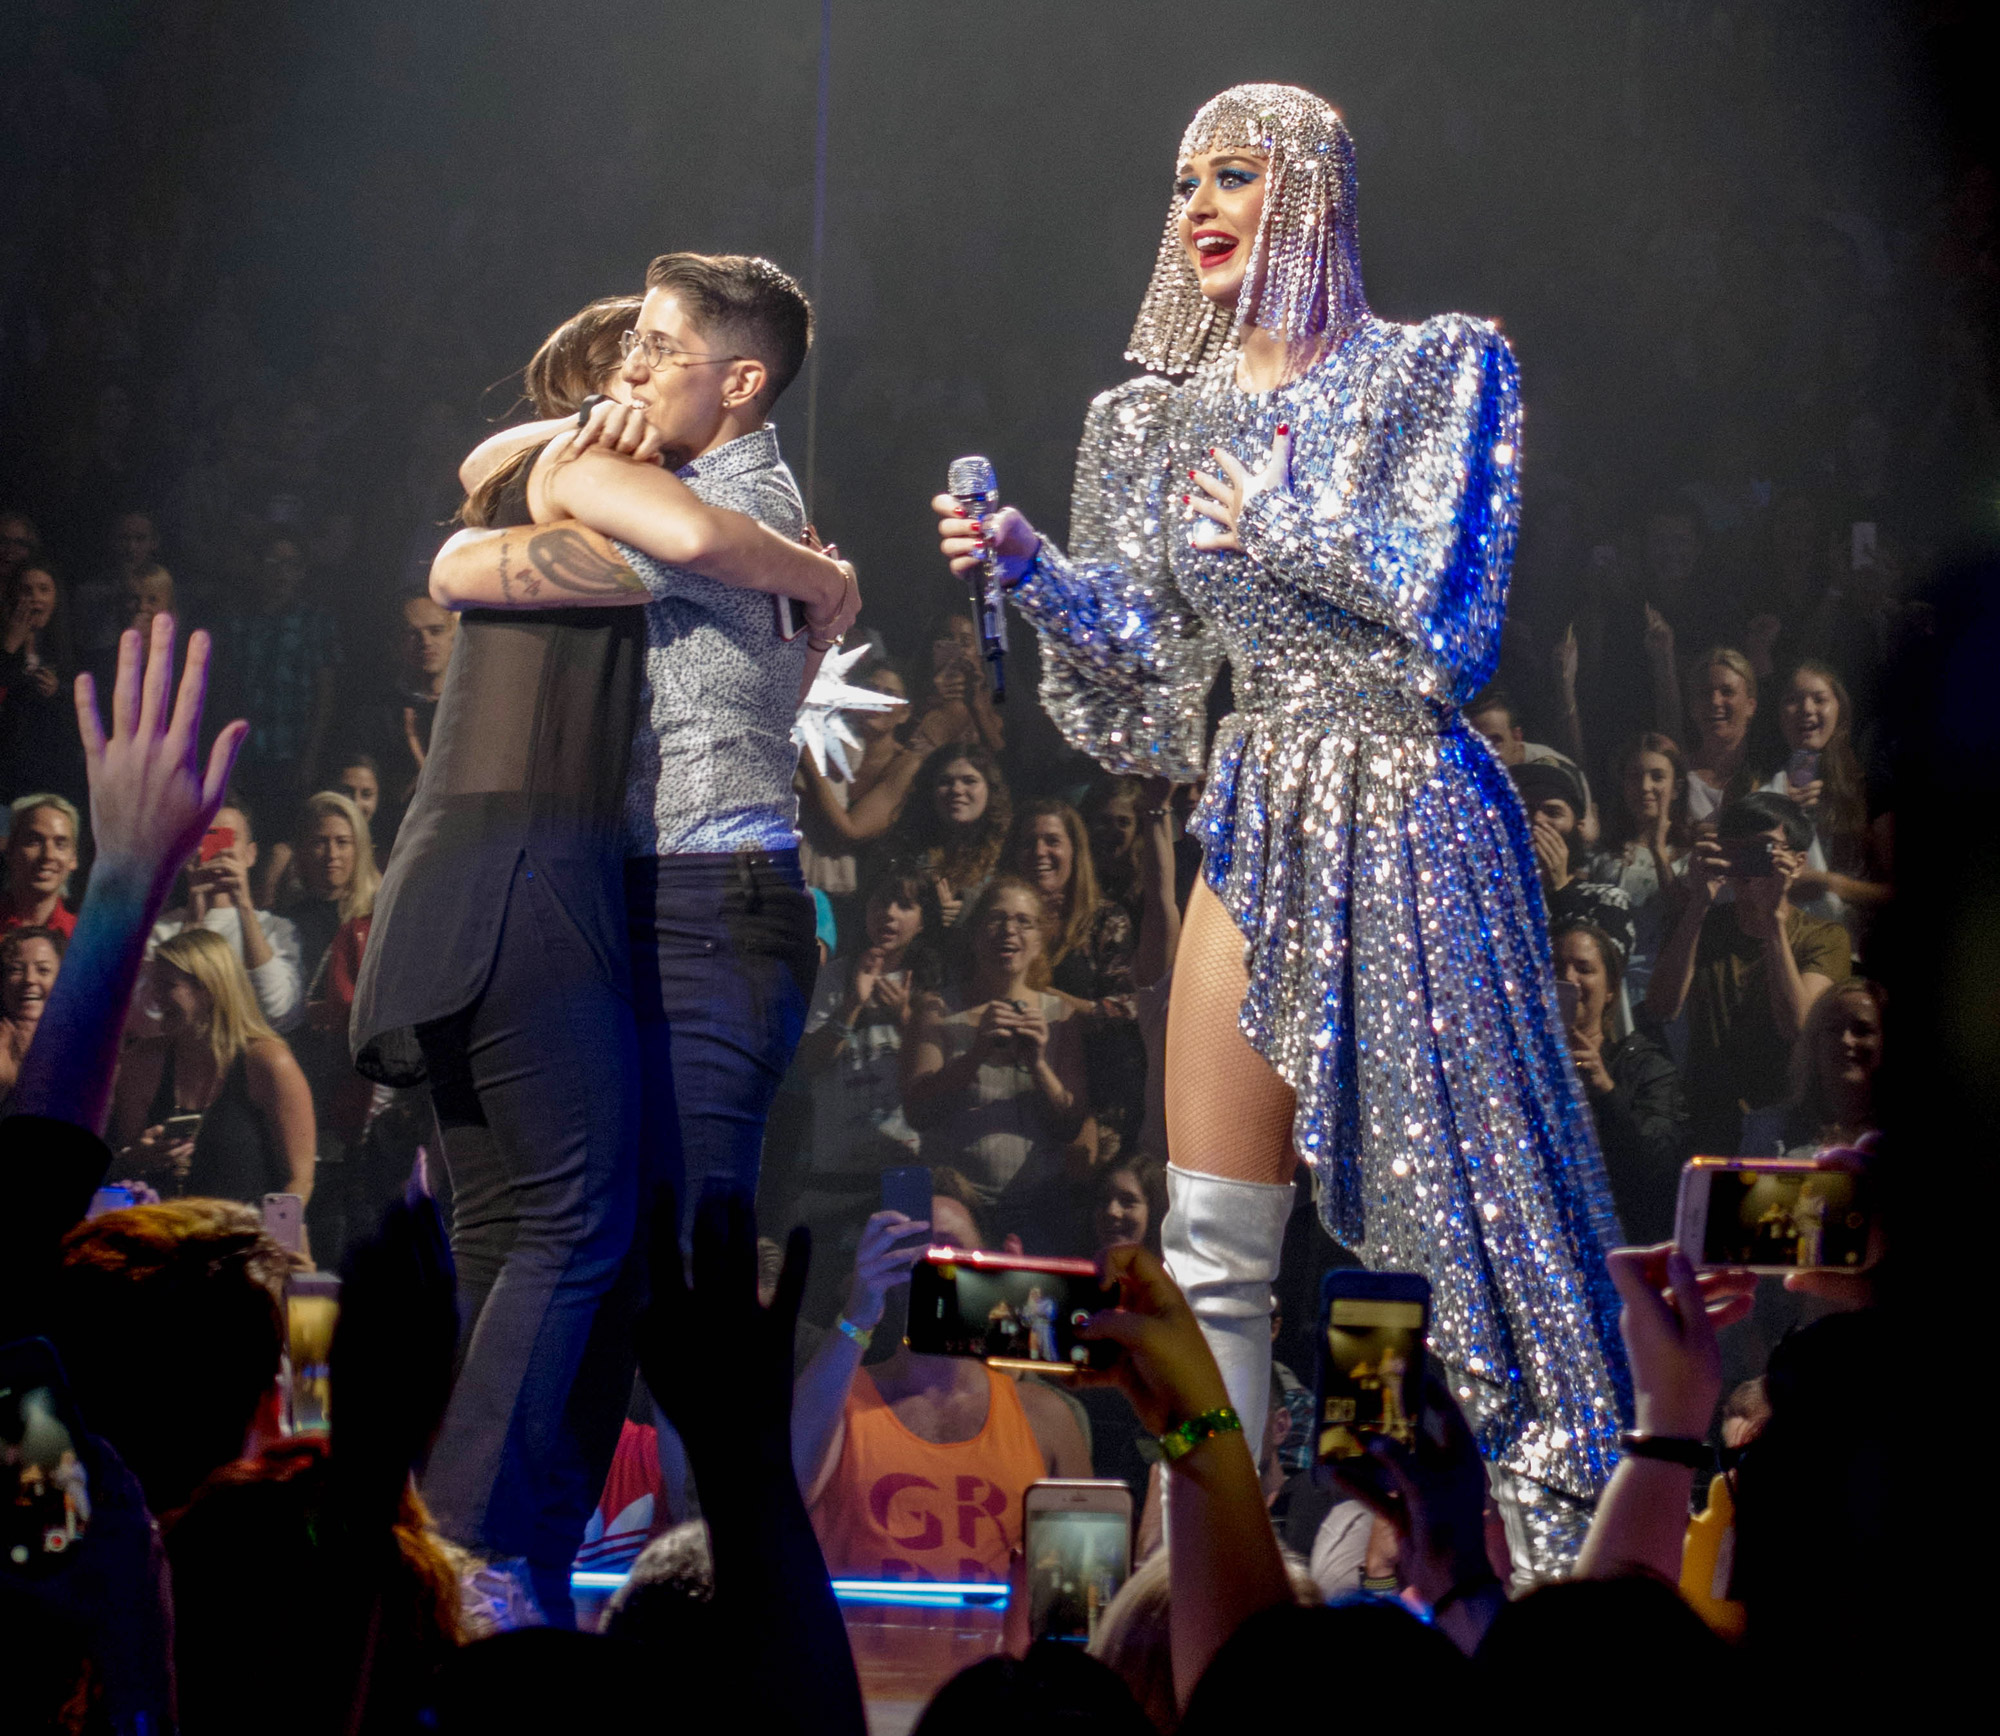 Katy Perry Helped a Woman Propose to Her Girlfriend on Stage